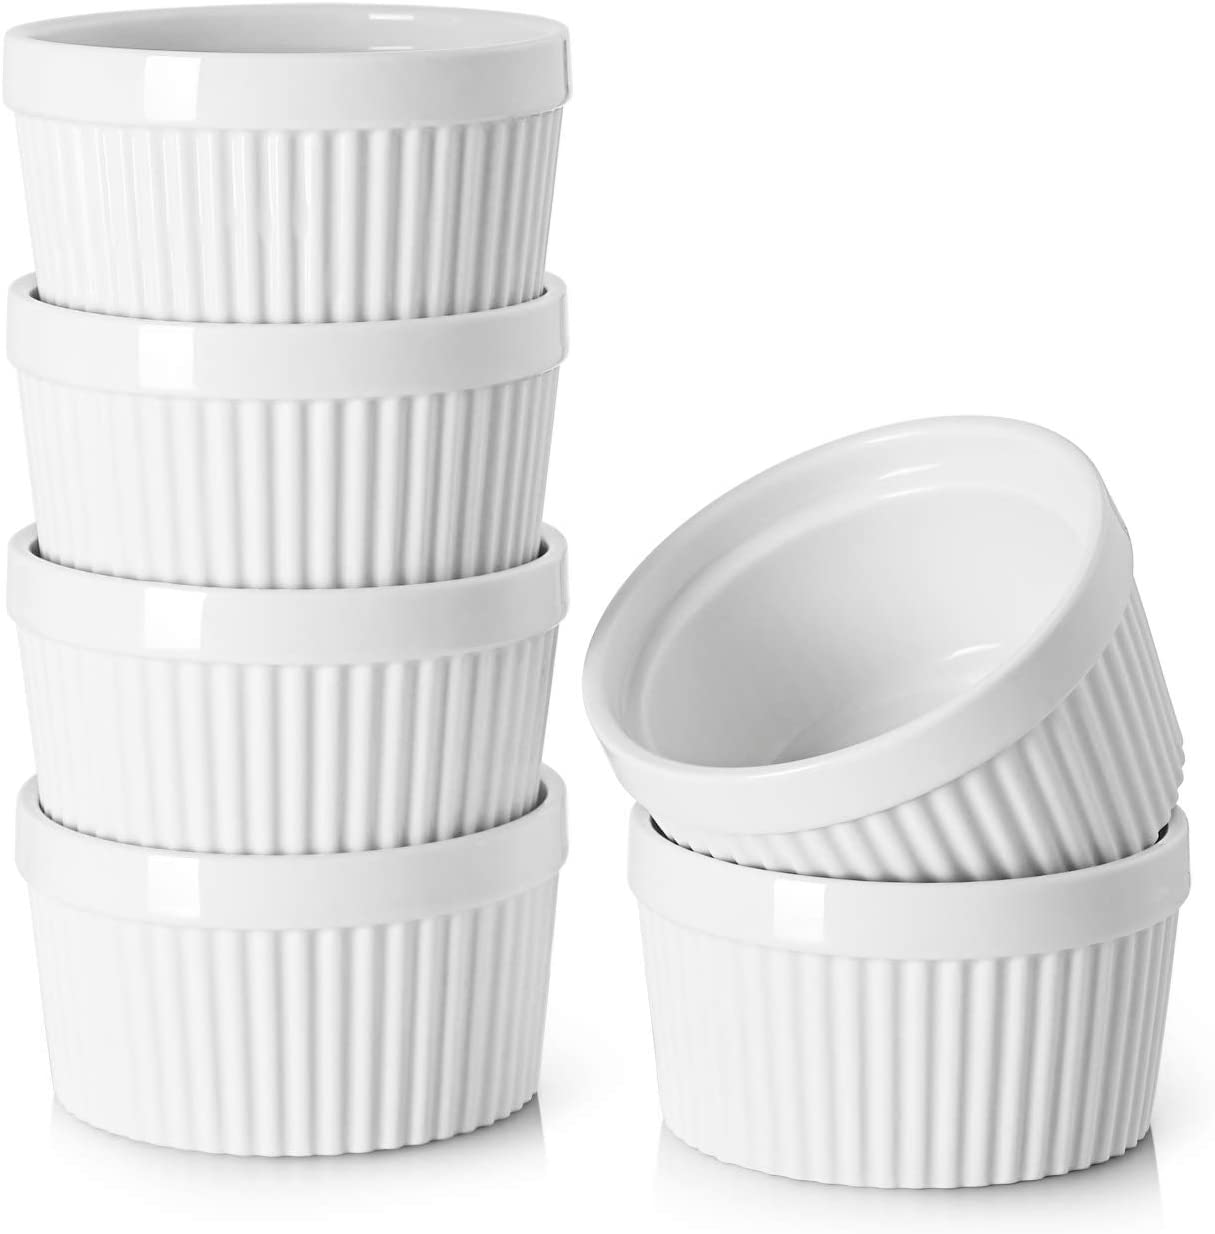 DOWAN 8 Oz Porcelain Ramekins - Souffle Dish Ramekins for Creme Brulee Pudding Oven Safe, Classic Style Ramekins Bowls for Baking, Set of 6, White